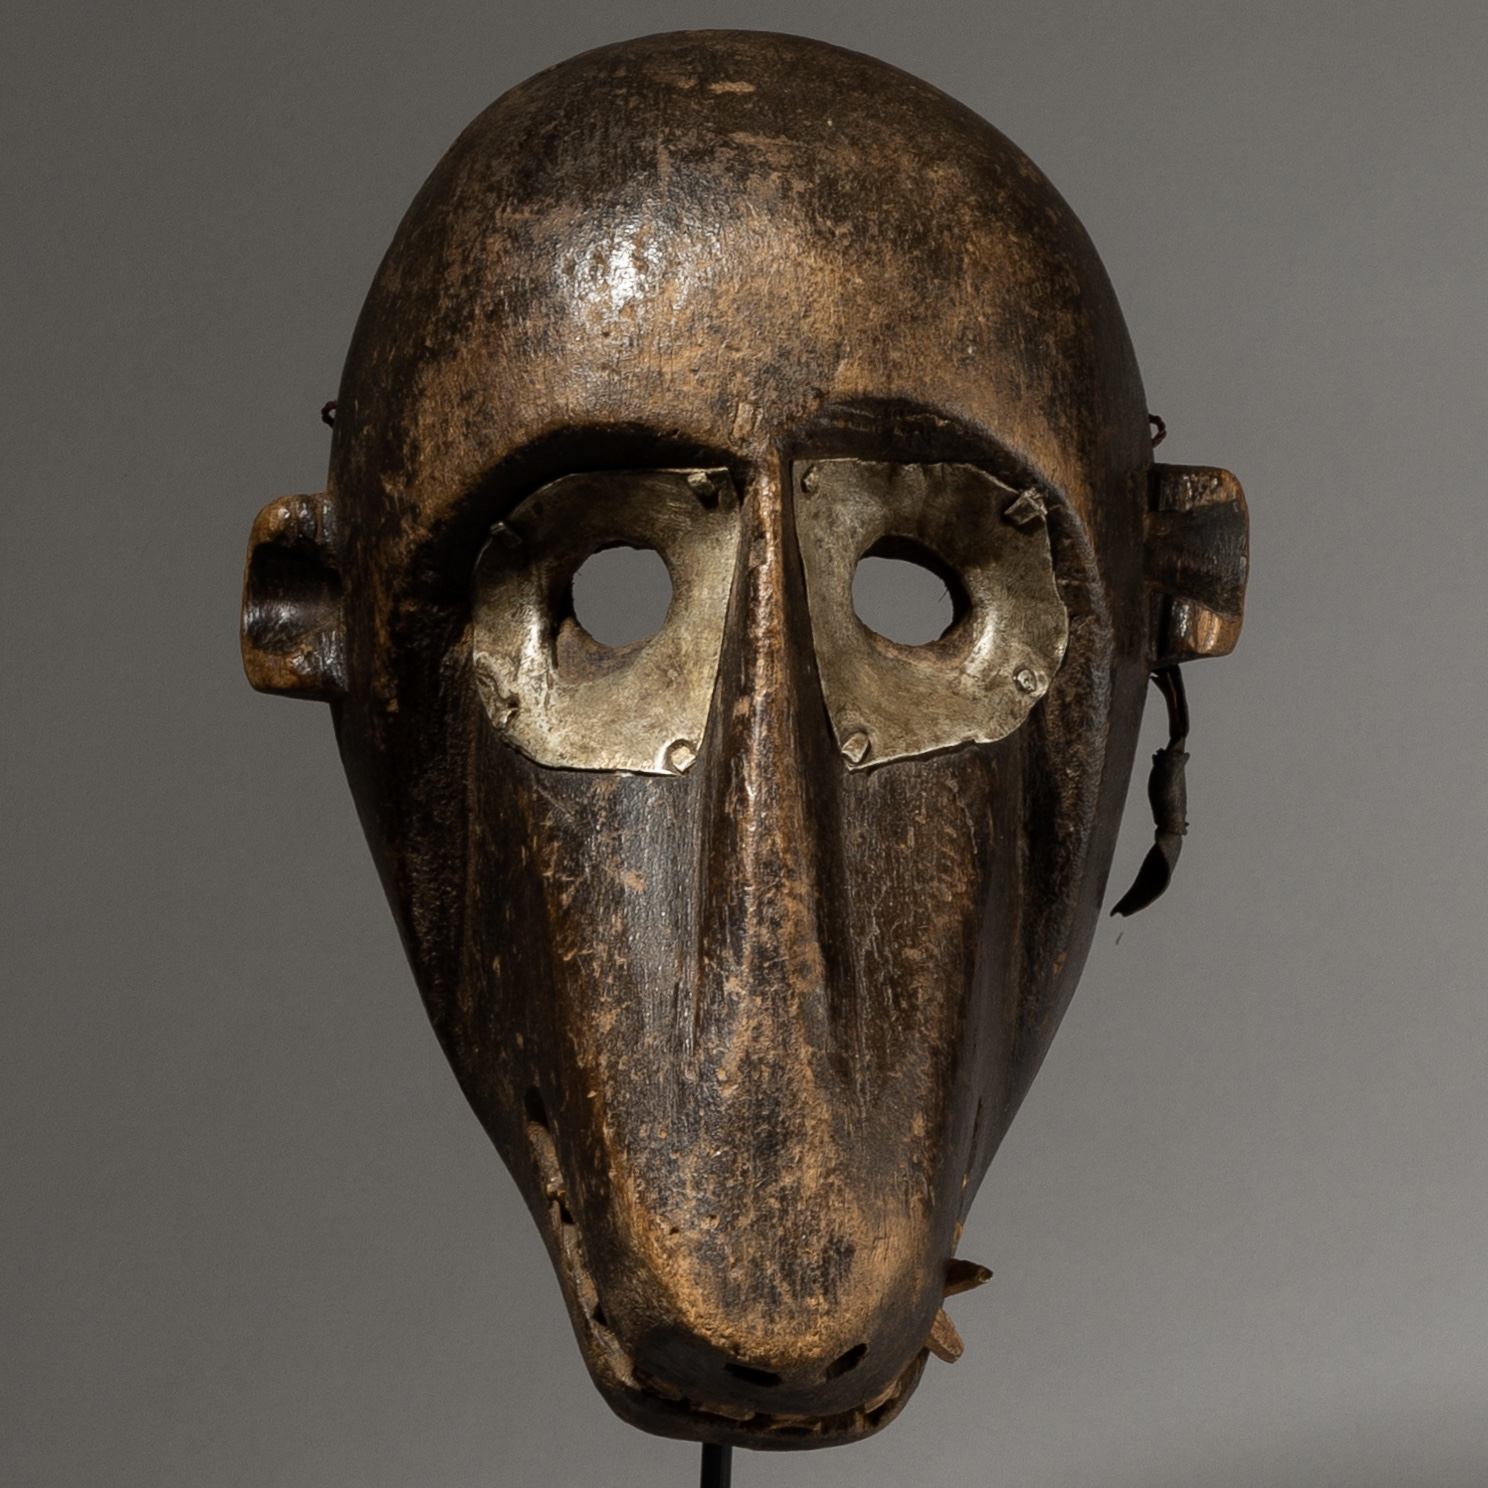 A MAGNIFICENT, MONKEY MASK WITH METAL EYES +REAL TEETH, MALINKE TRIBE OF MALI, W AFRICA ( No 4031)